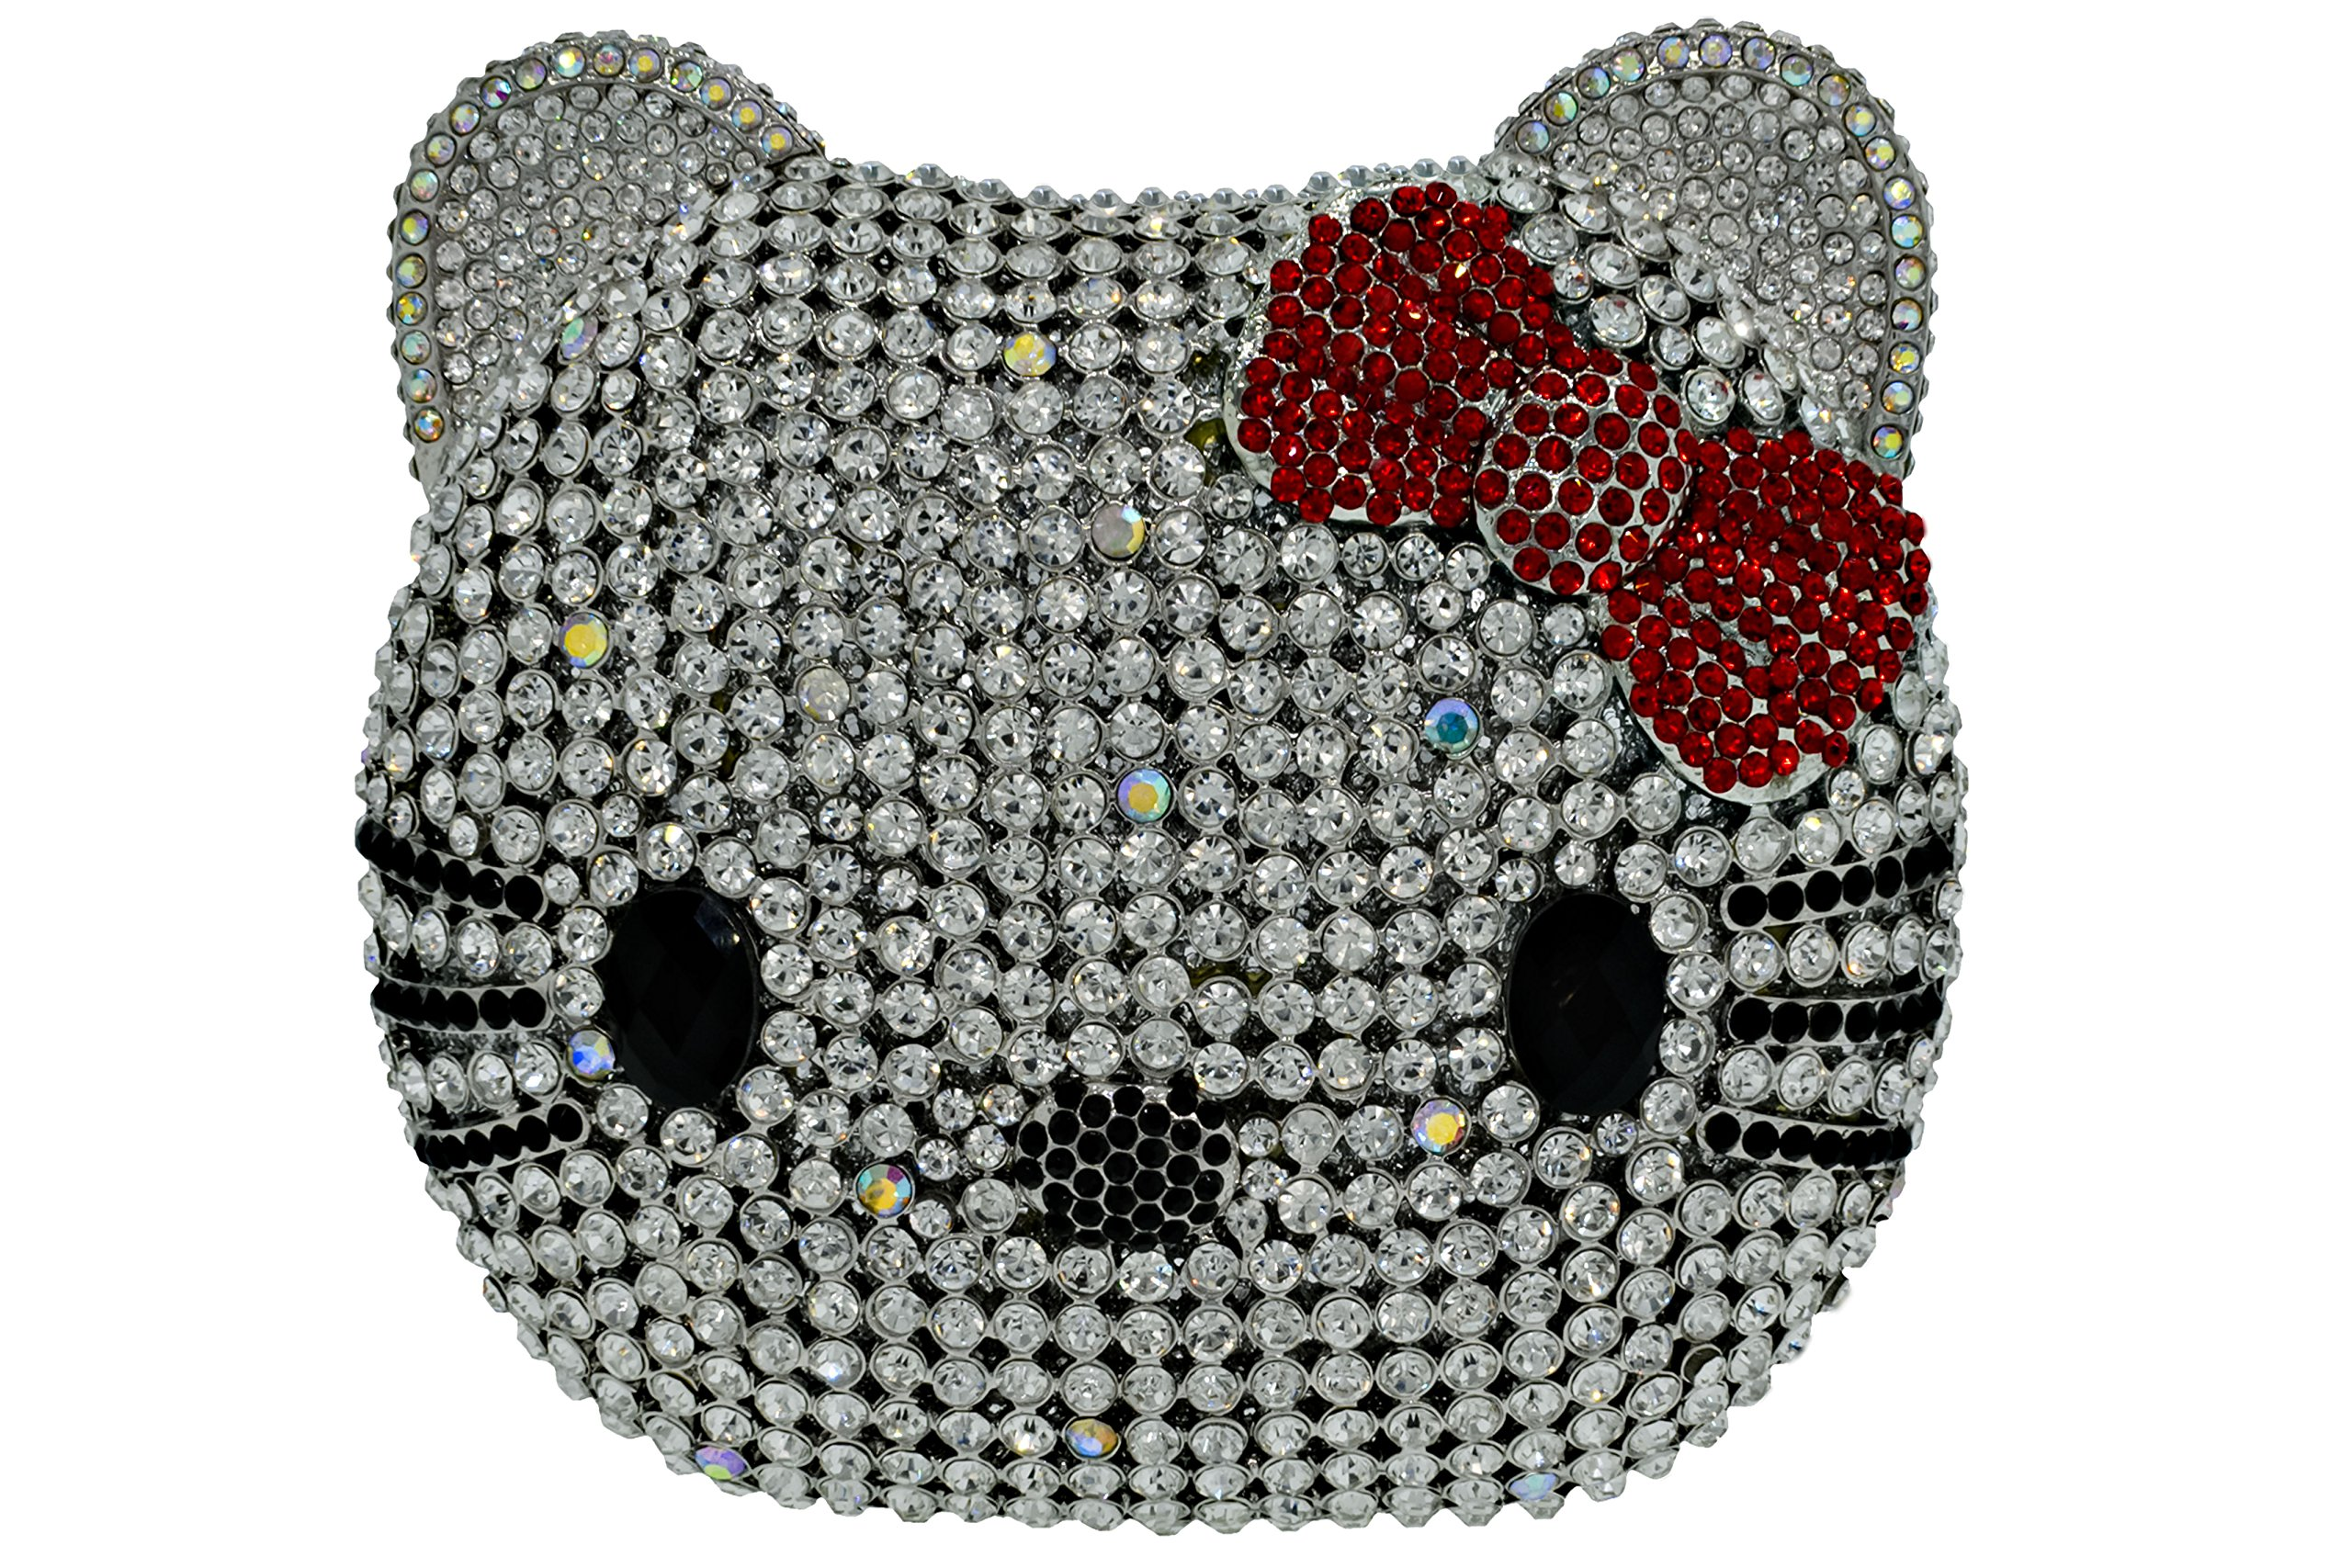 3-D Kitty Cat Crystal Clutch Holiday Party Evening Bag & Compact Mirror Gift Set Silver